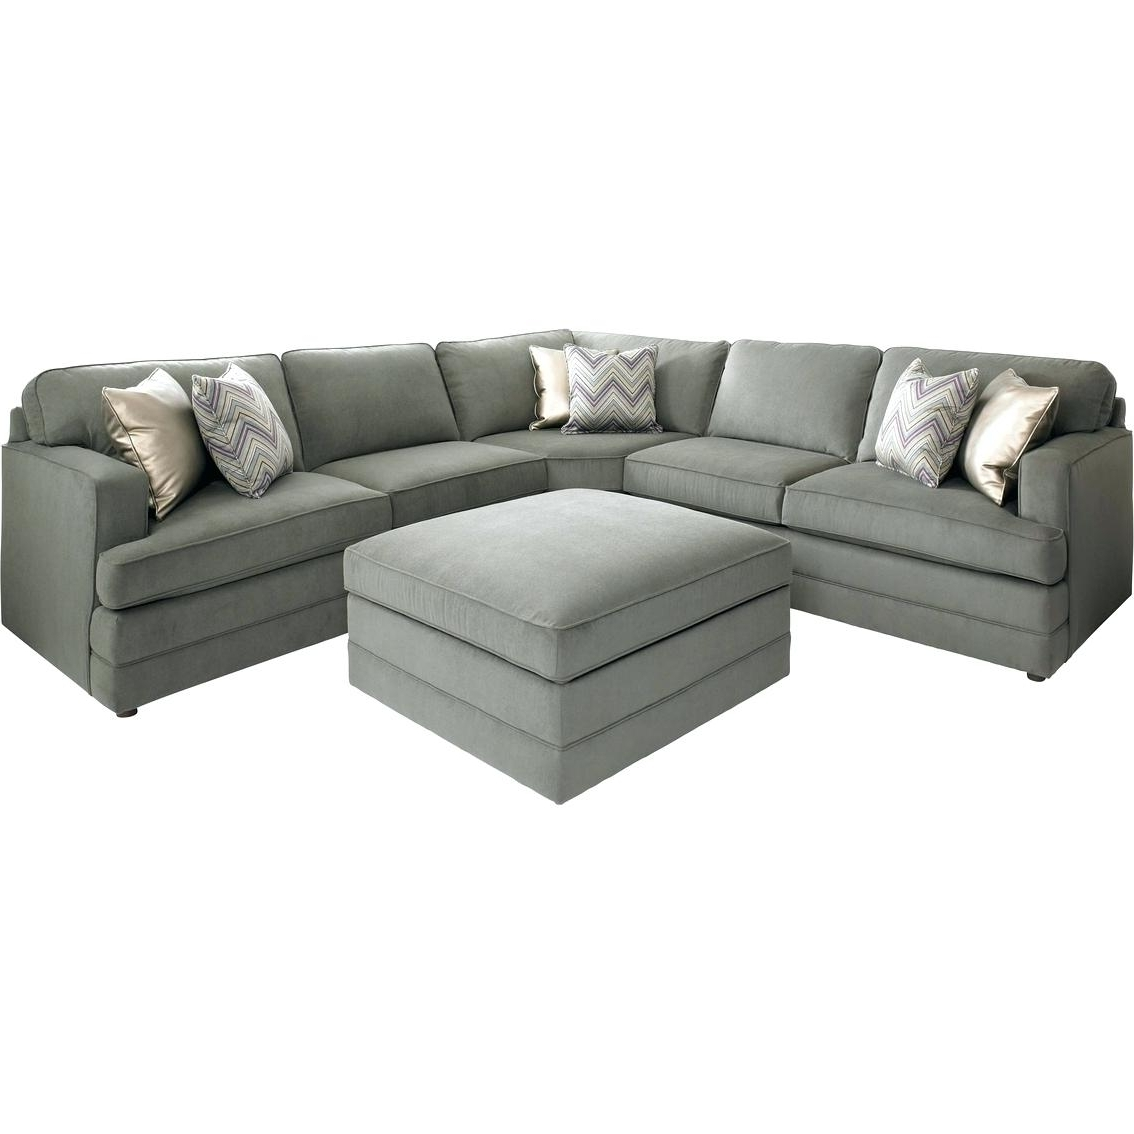 Most Recently Released Sectional Sofa Sale Sa Couches For Near Me Liquidation Toronto With London Ontario Sectional Sofas (View 9 of 15)